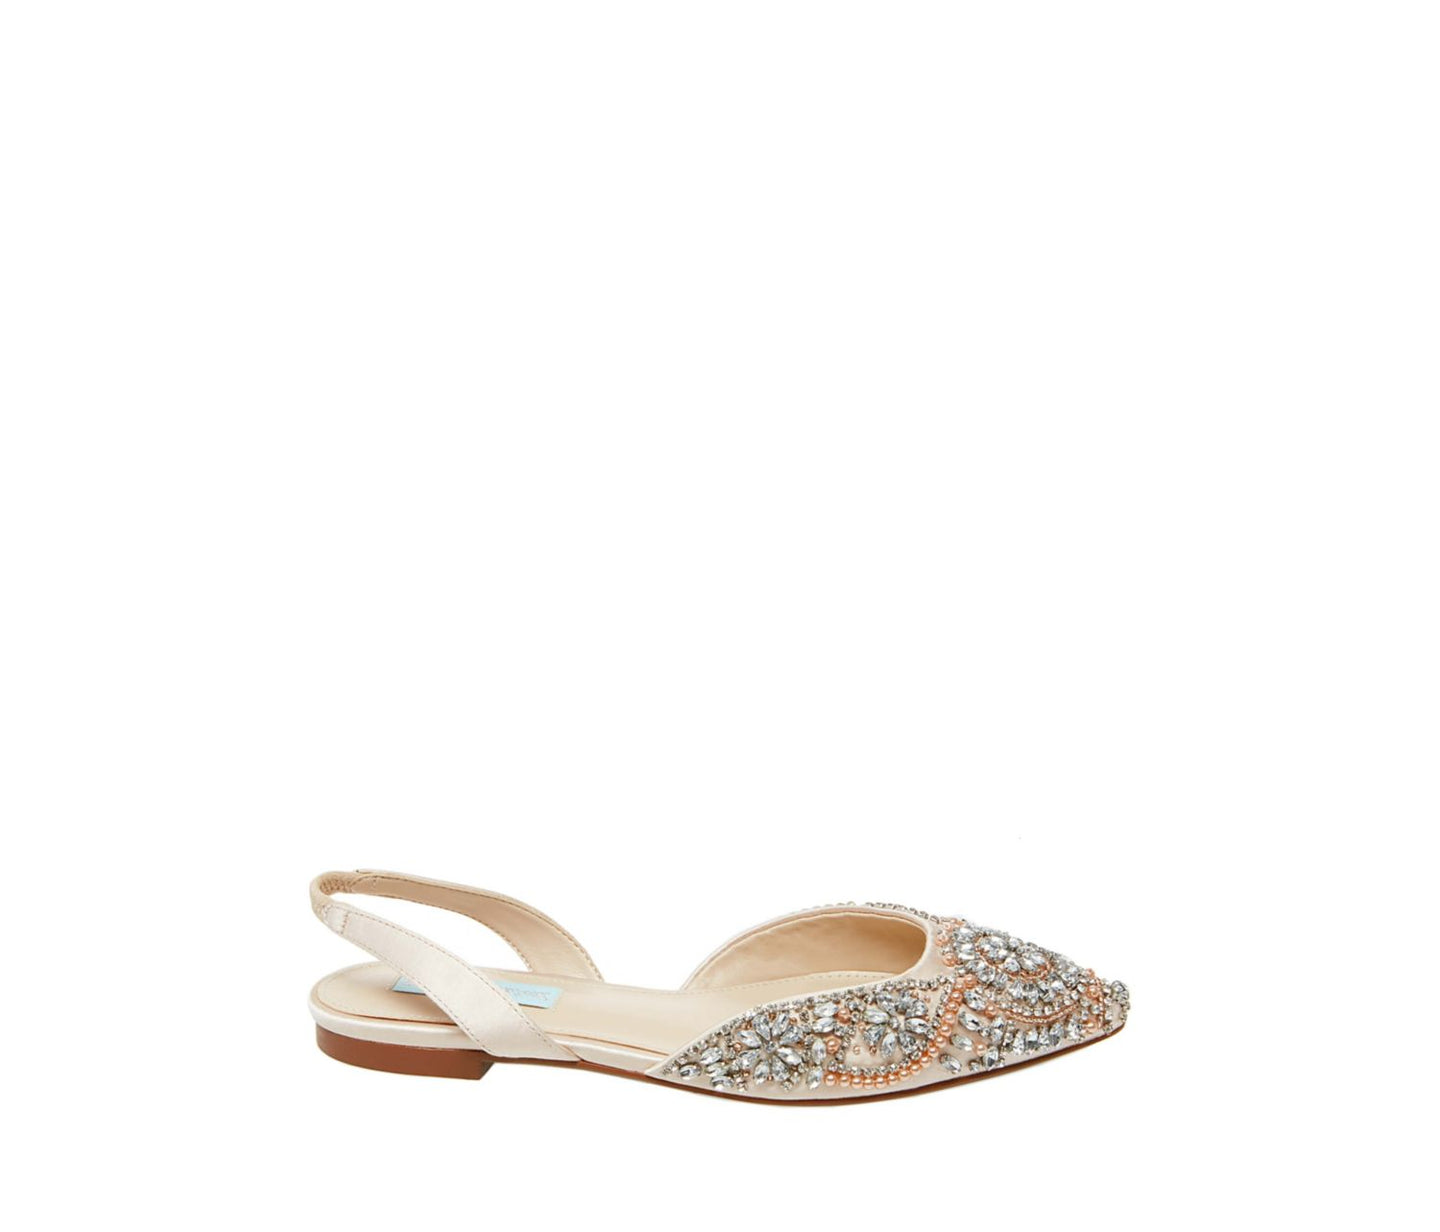 SB-MOLLY CHAMPAGNE SATIN - SHOES - Betsey Johnson